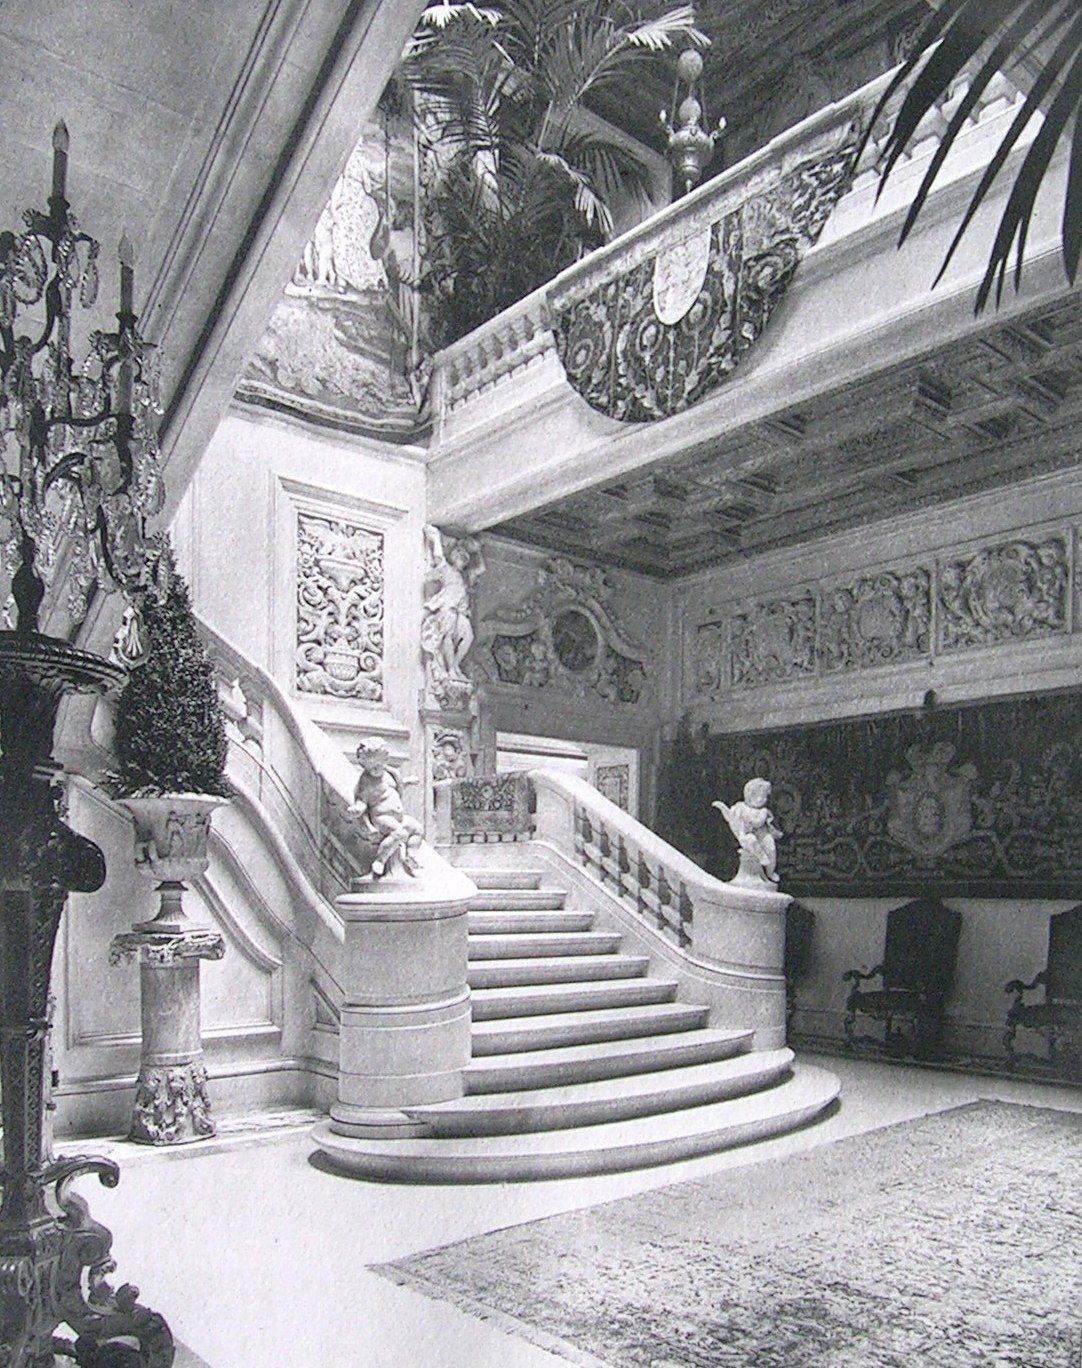 Mansions of the Gilded Age: The W. A. Salomon Town House 1020 Fifth Avenue & 83rd